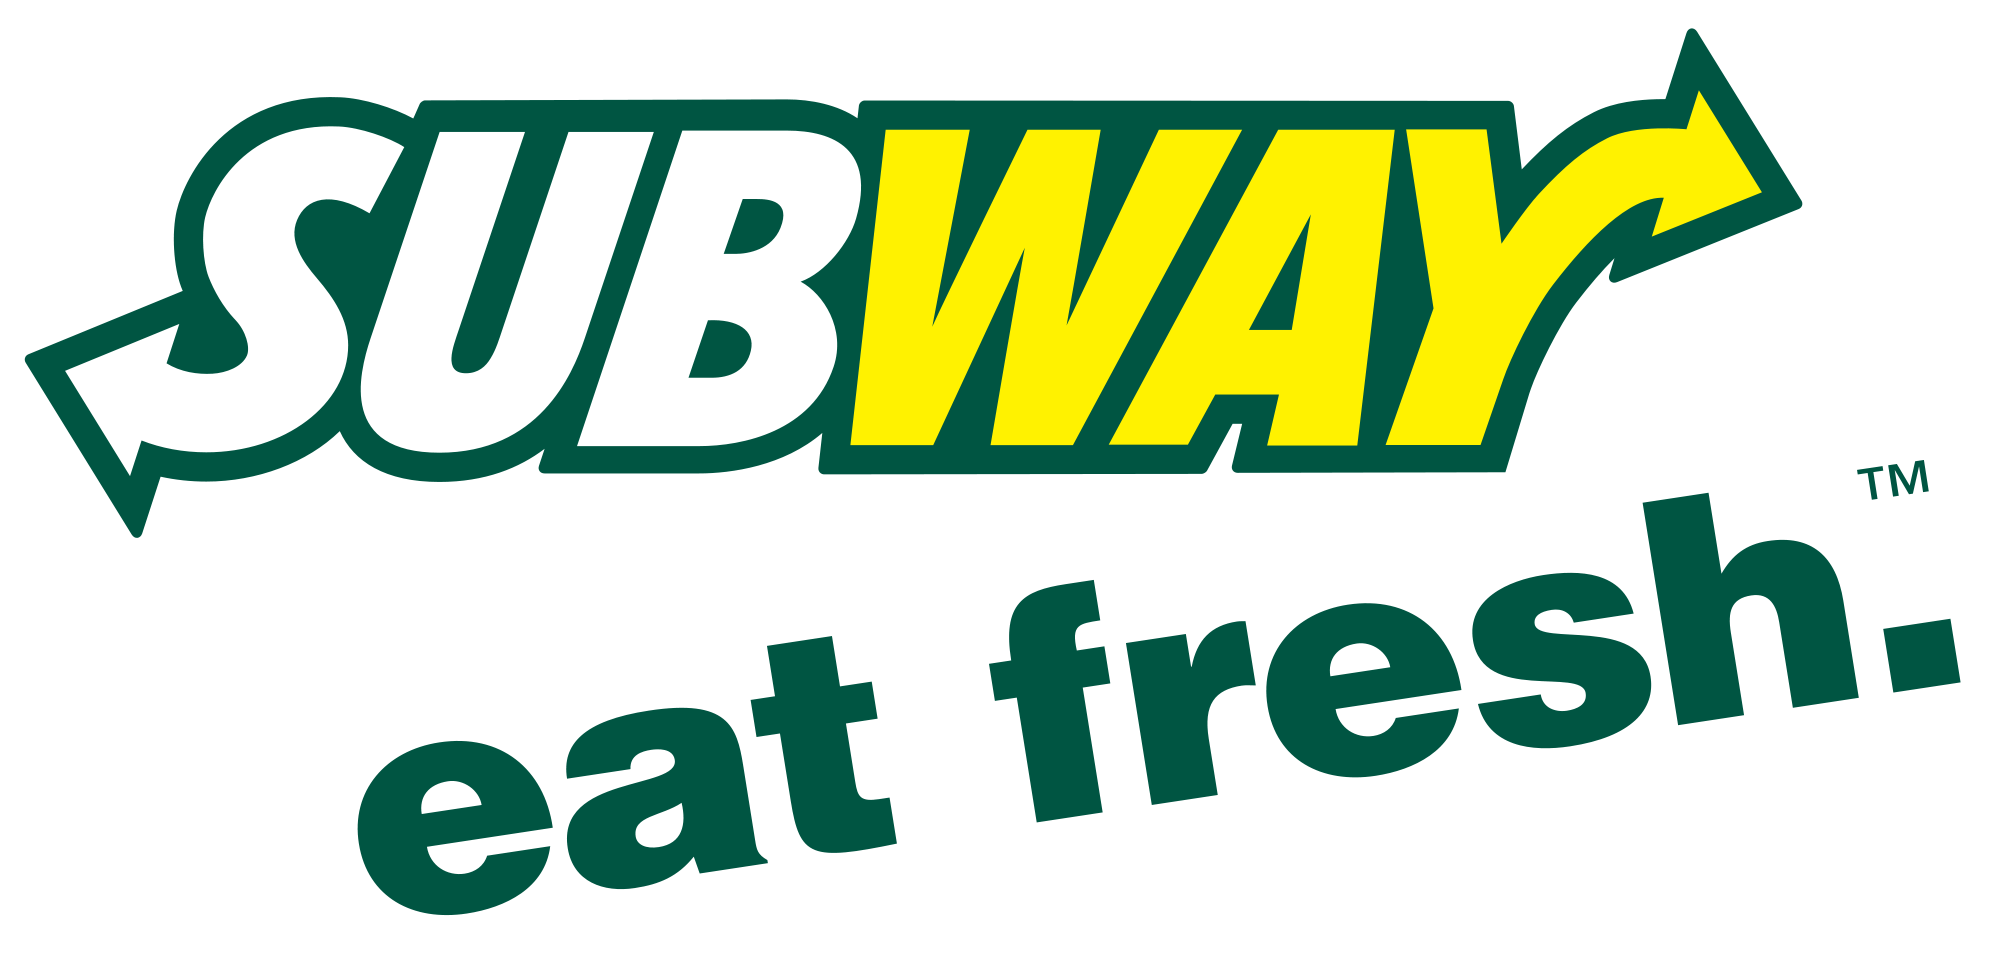 closest subway, nearest subway, subway near me, subway locations